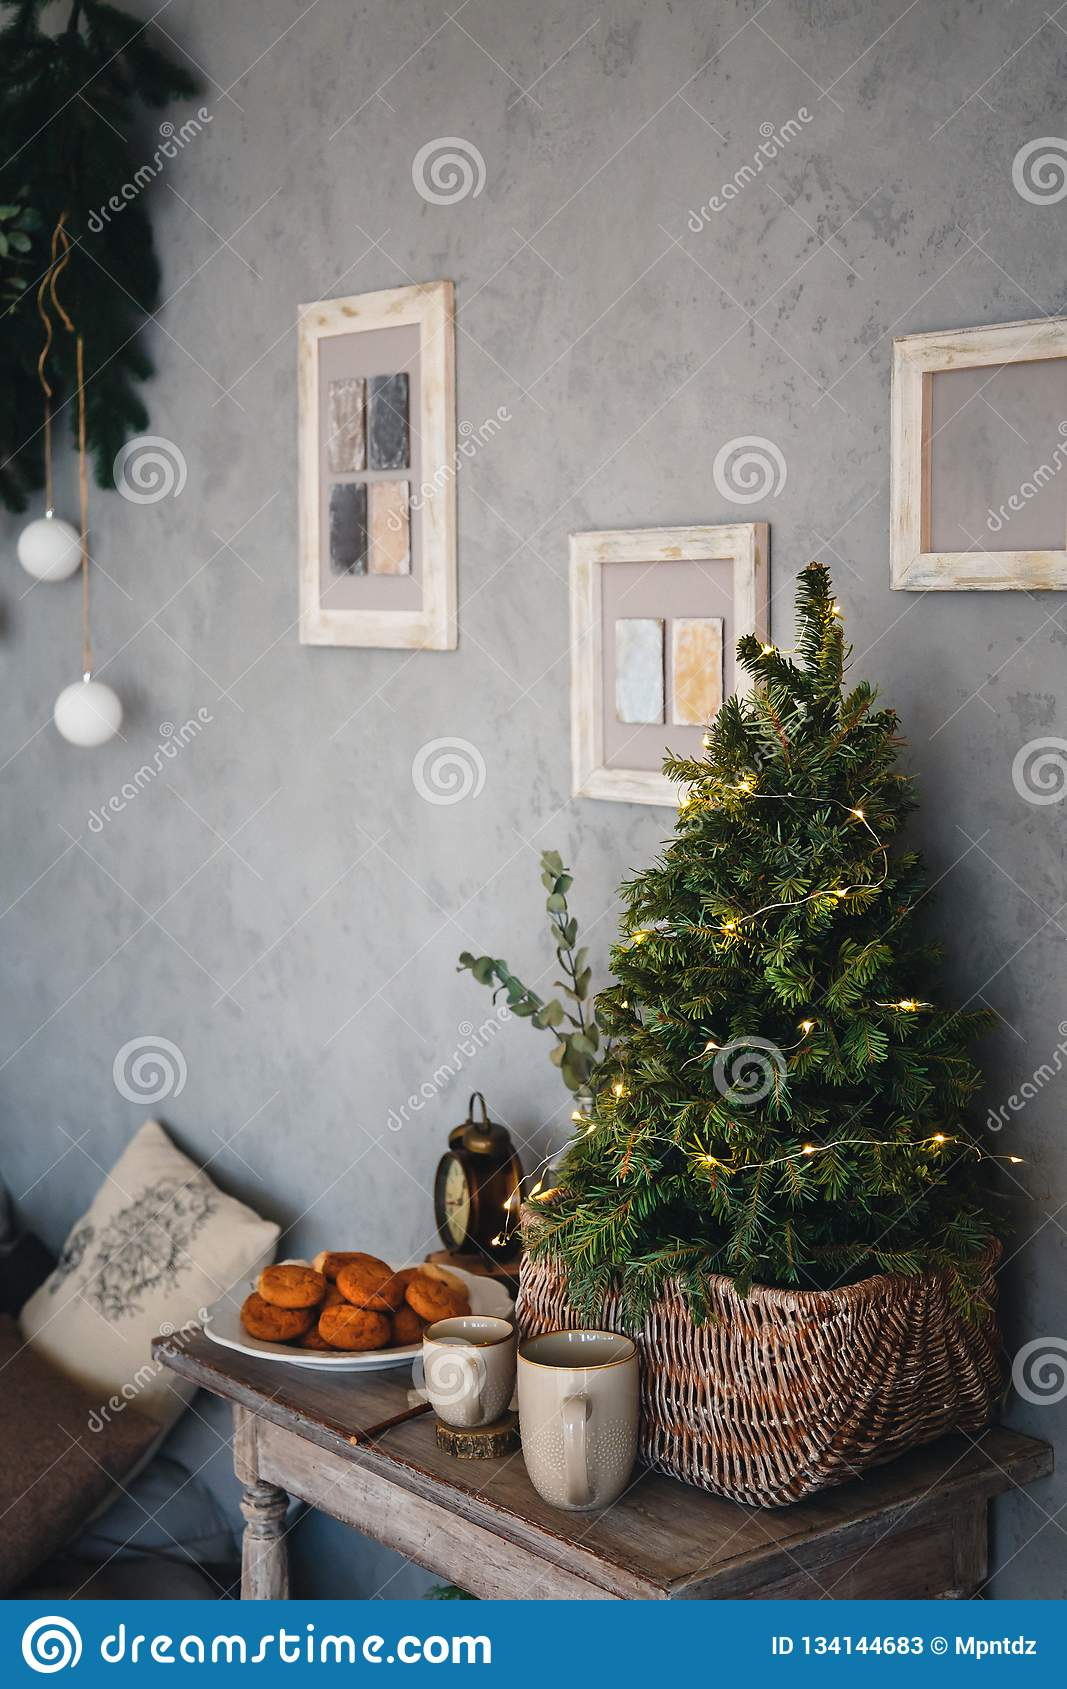 Small Real Christmas Tree With Yellow Christmas Lights Loft Style Modern Design Room In Light Colors Decorated For Stock Image Image Of Green Interior 134144683